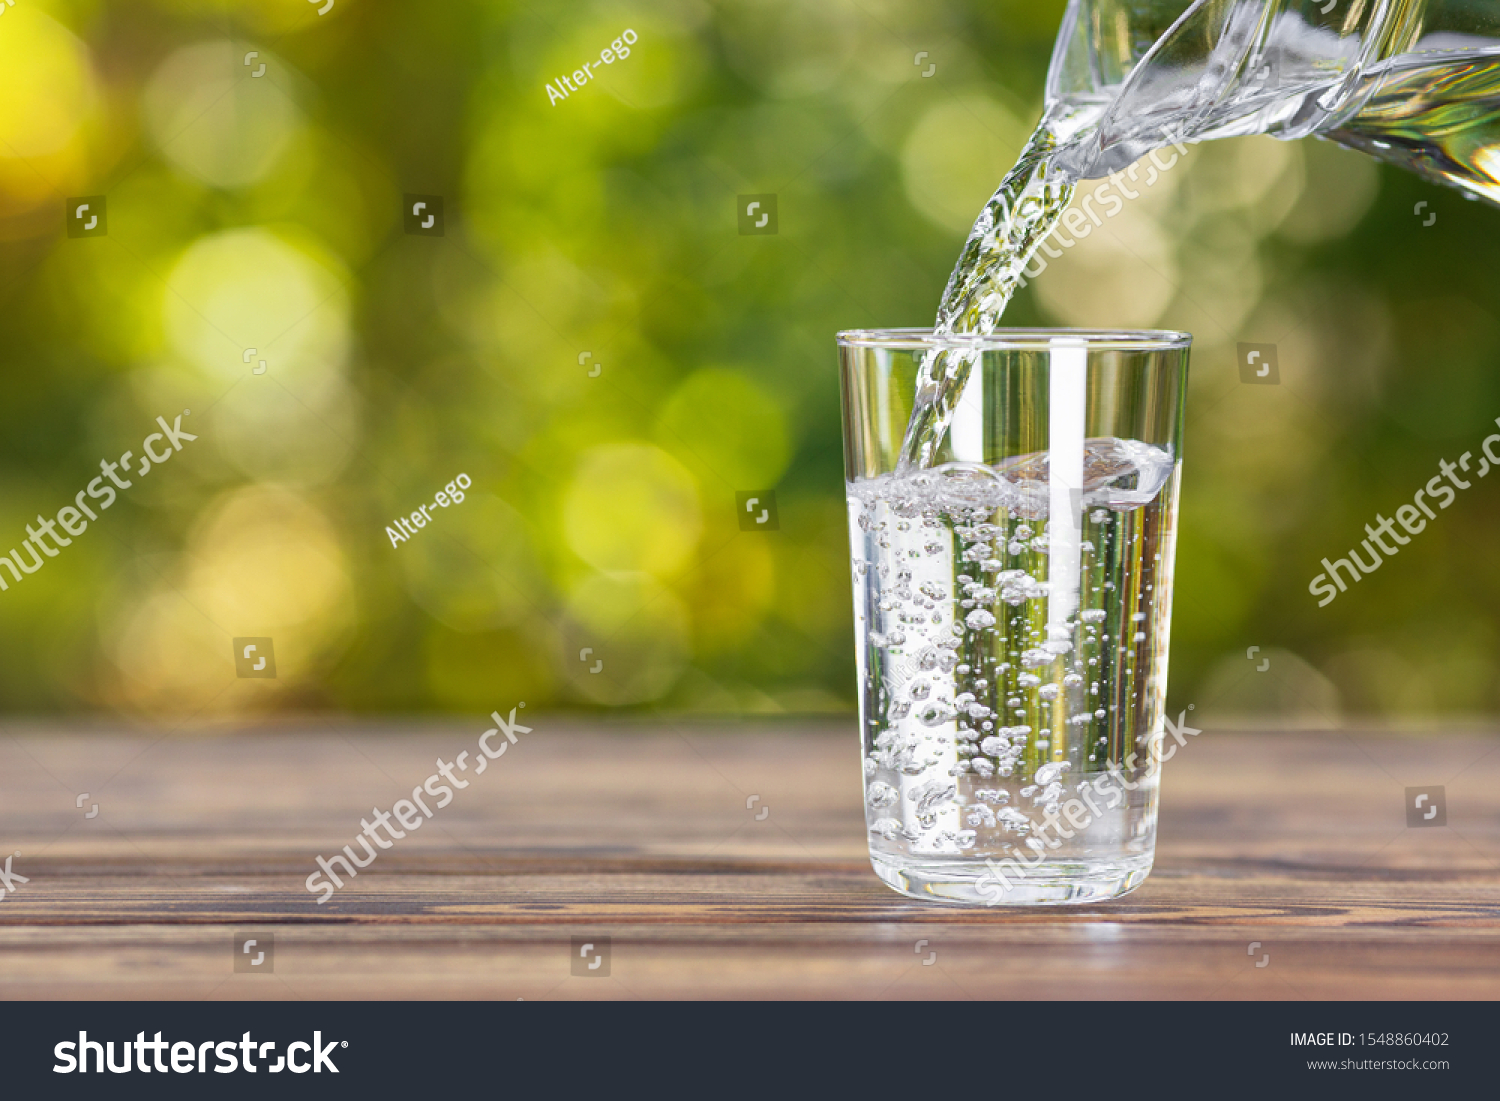 water from jug pouring into glass on wooden table outdoors #1548860402